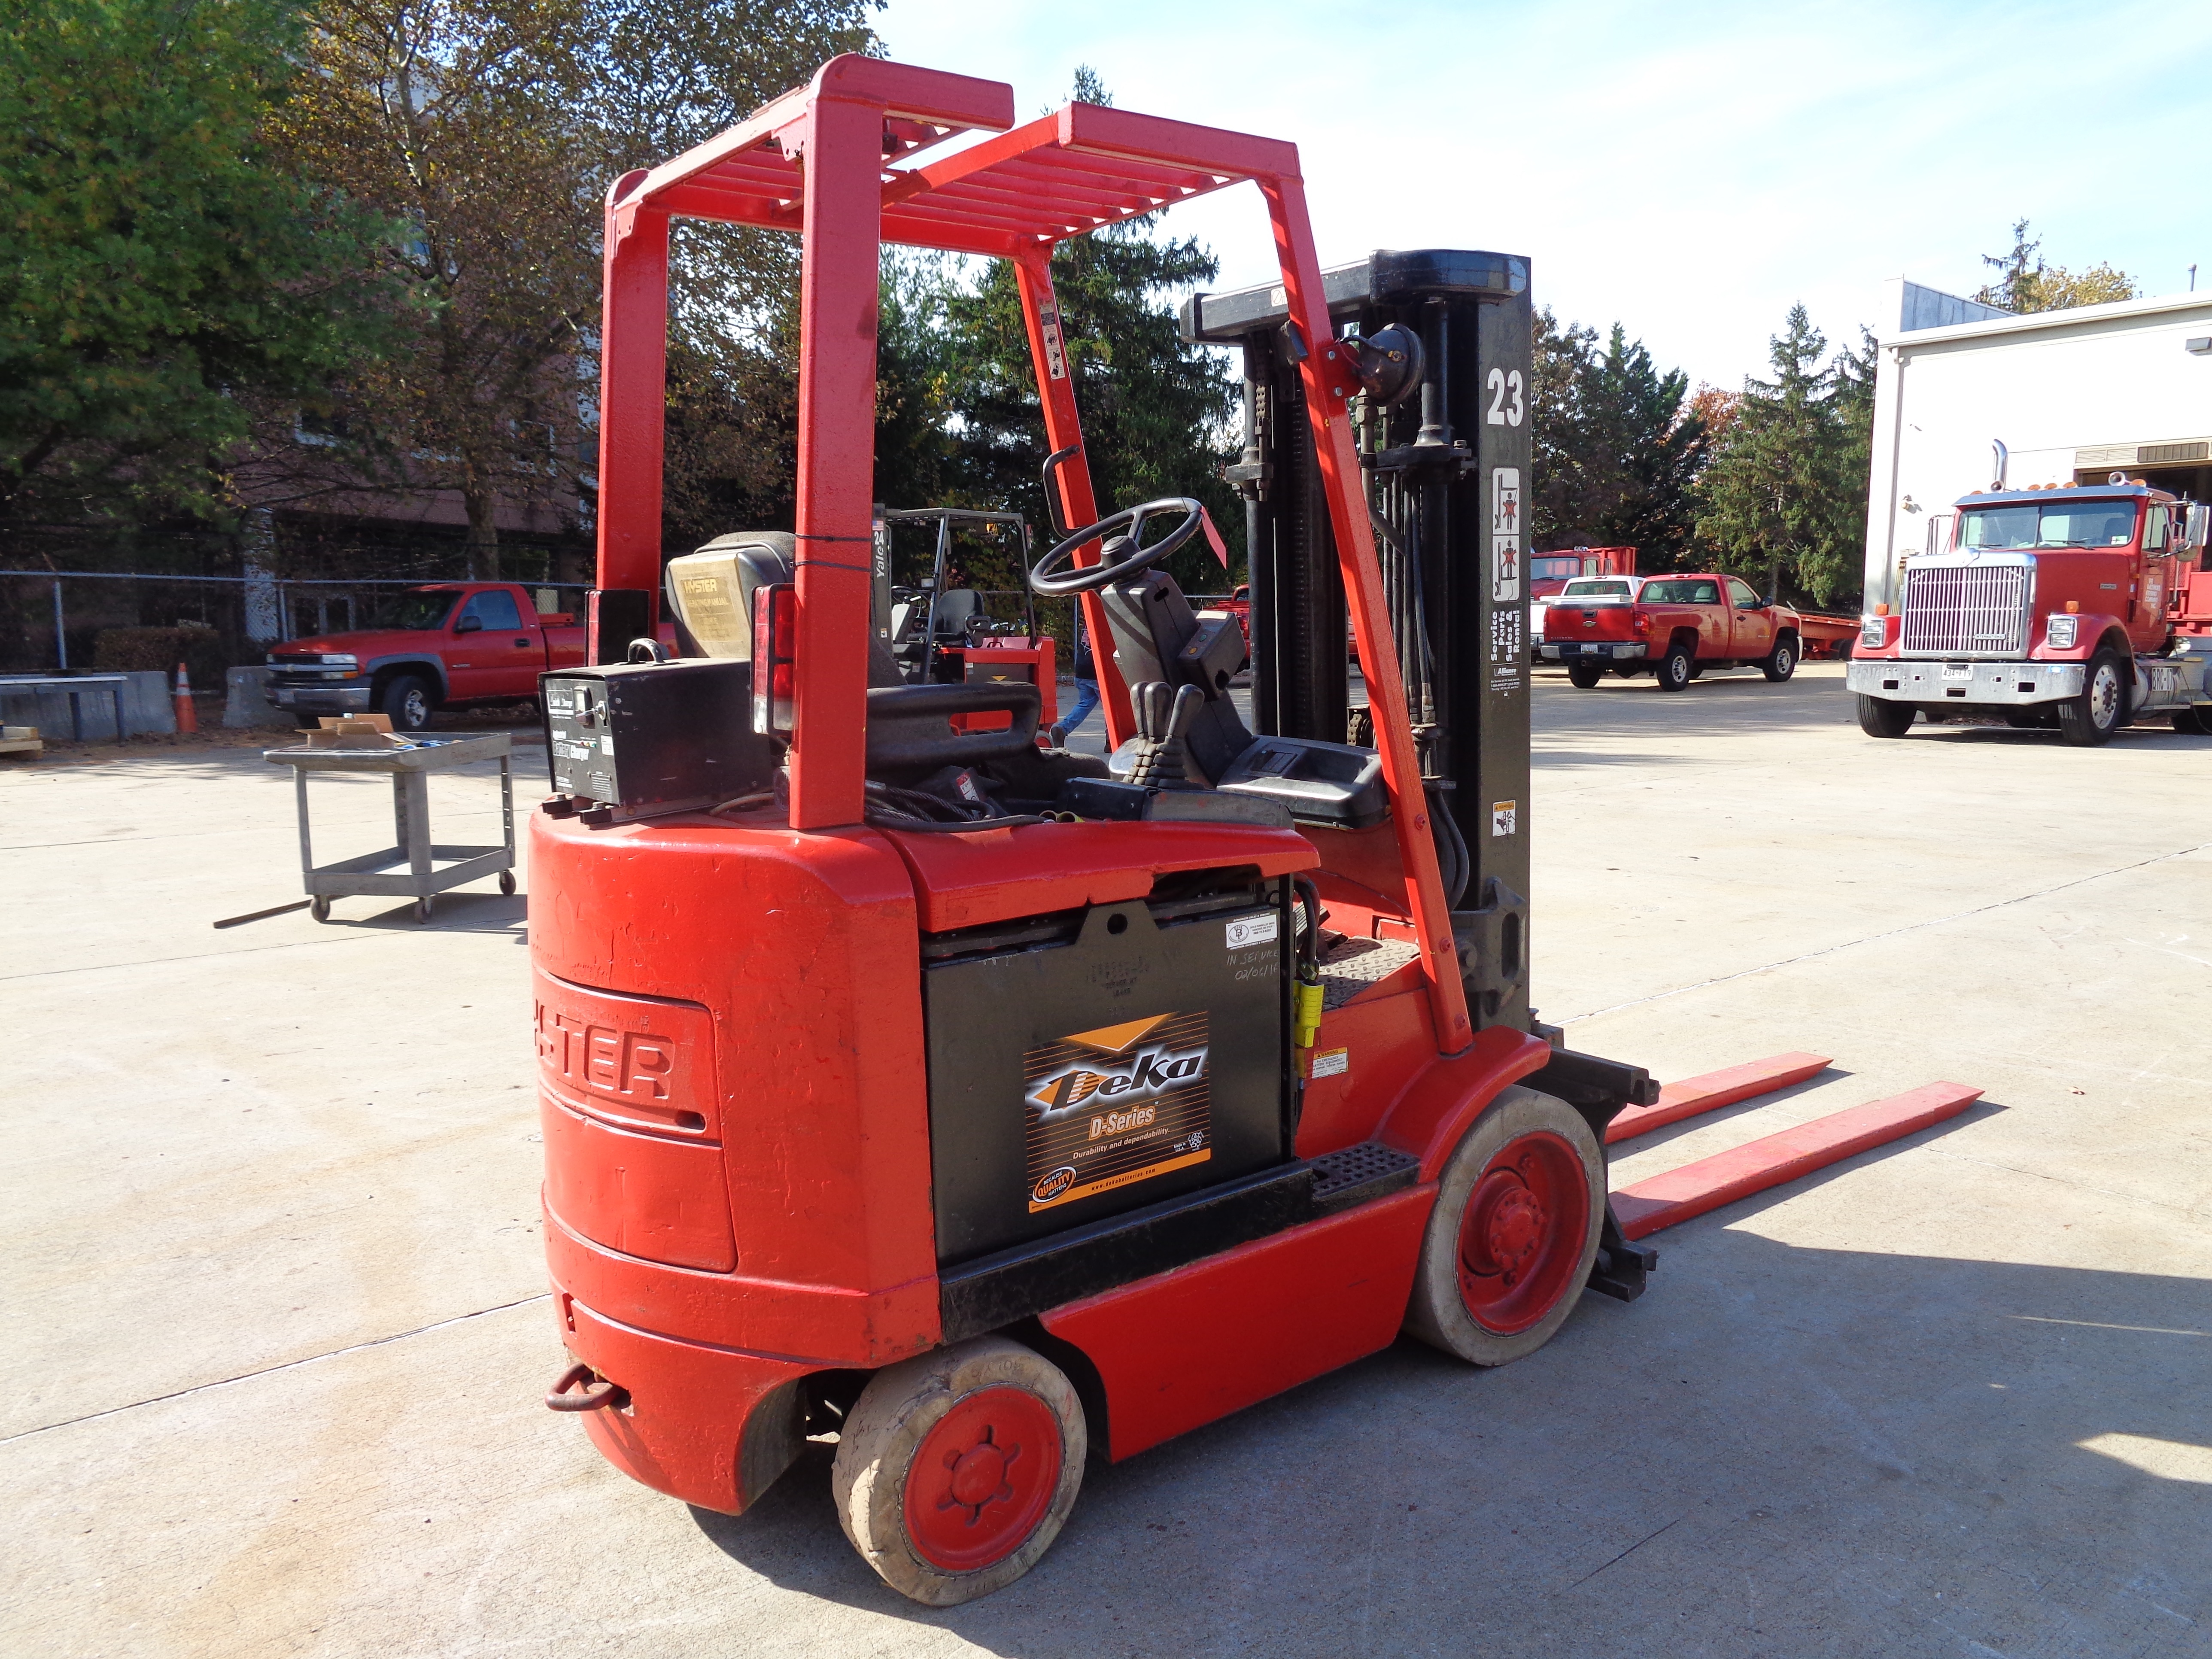 1999 Hyster E50XM-27 Forklift - 5,000 lbs - Image 4 of 5